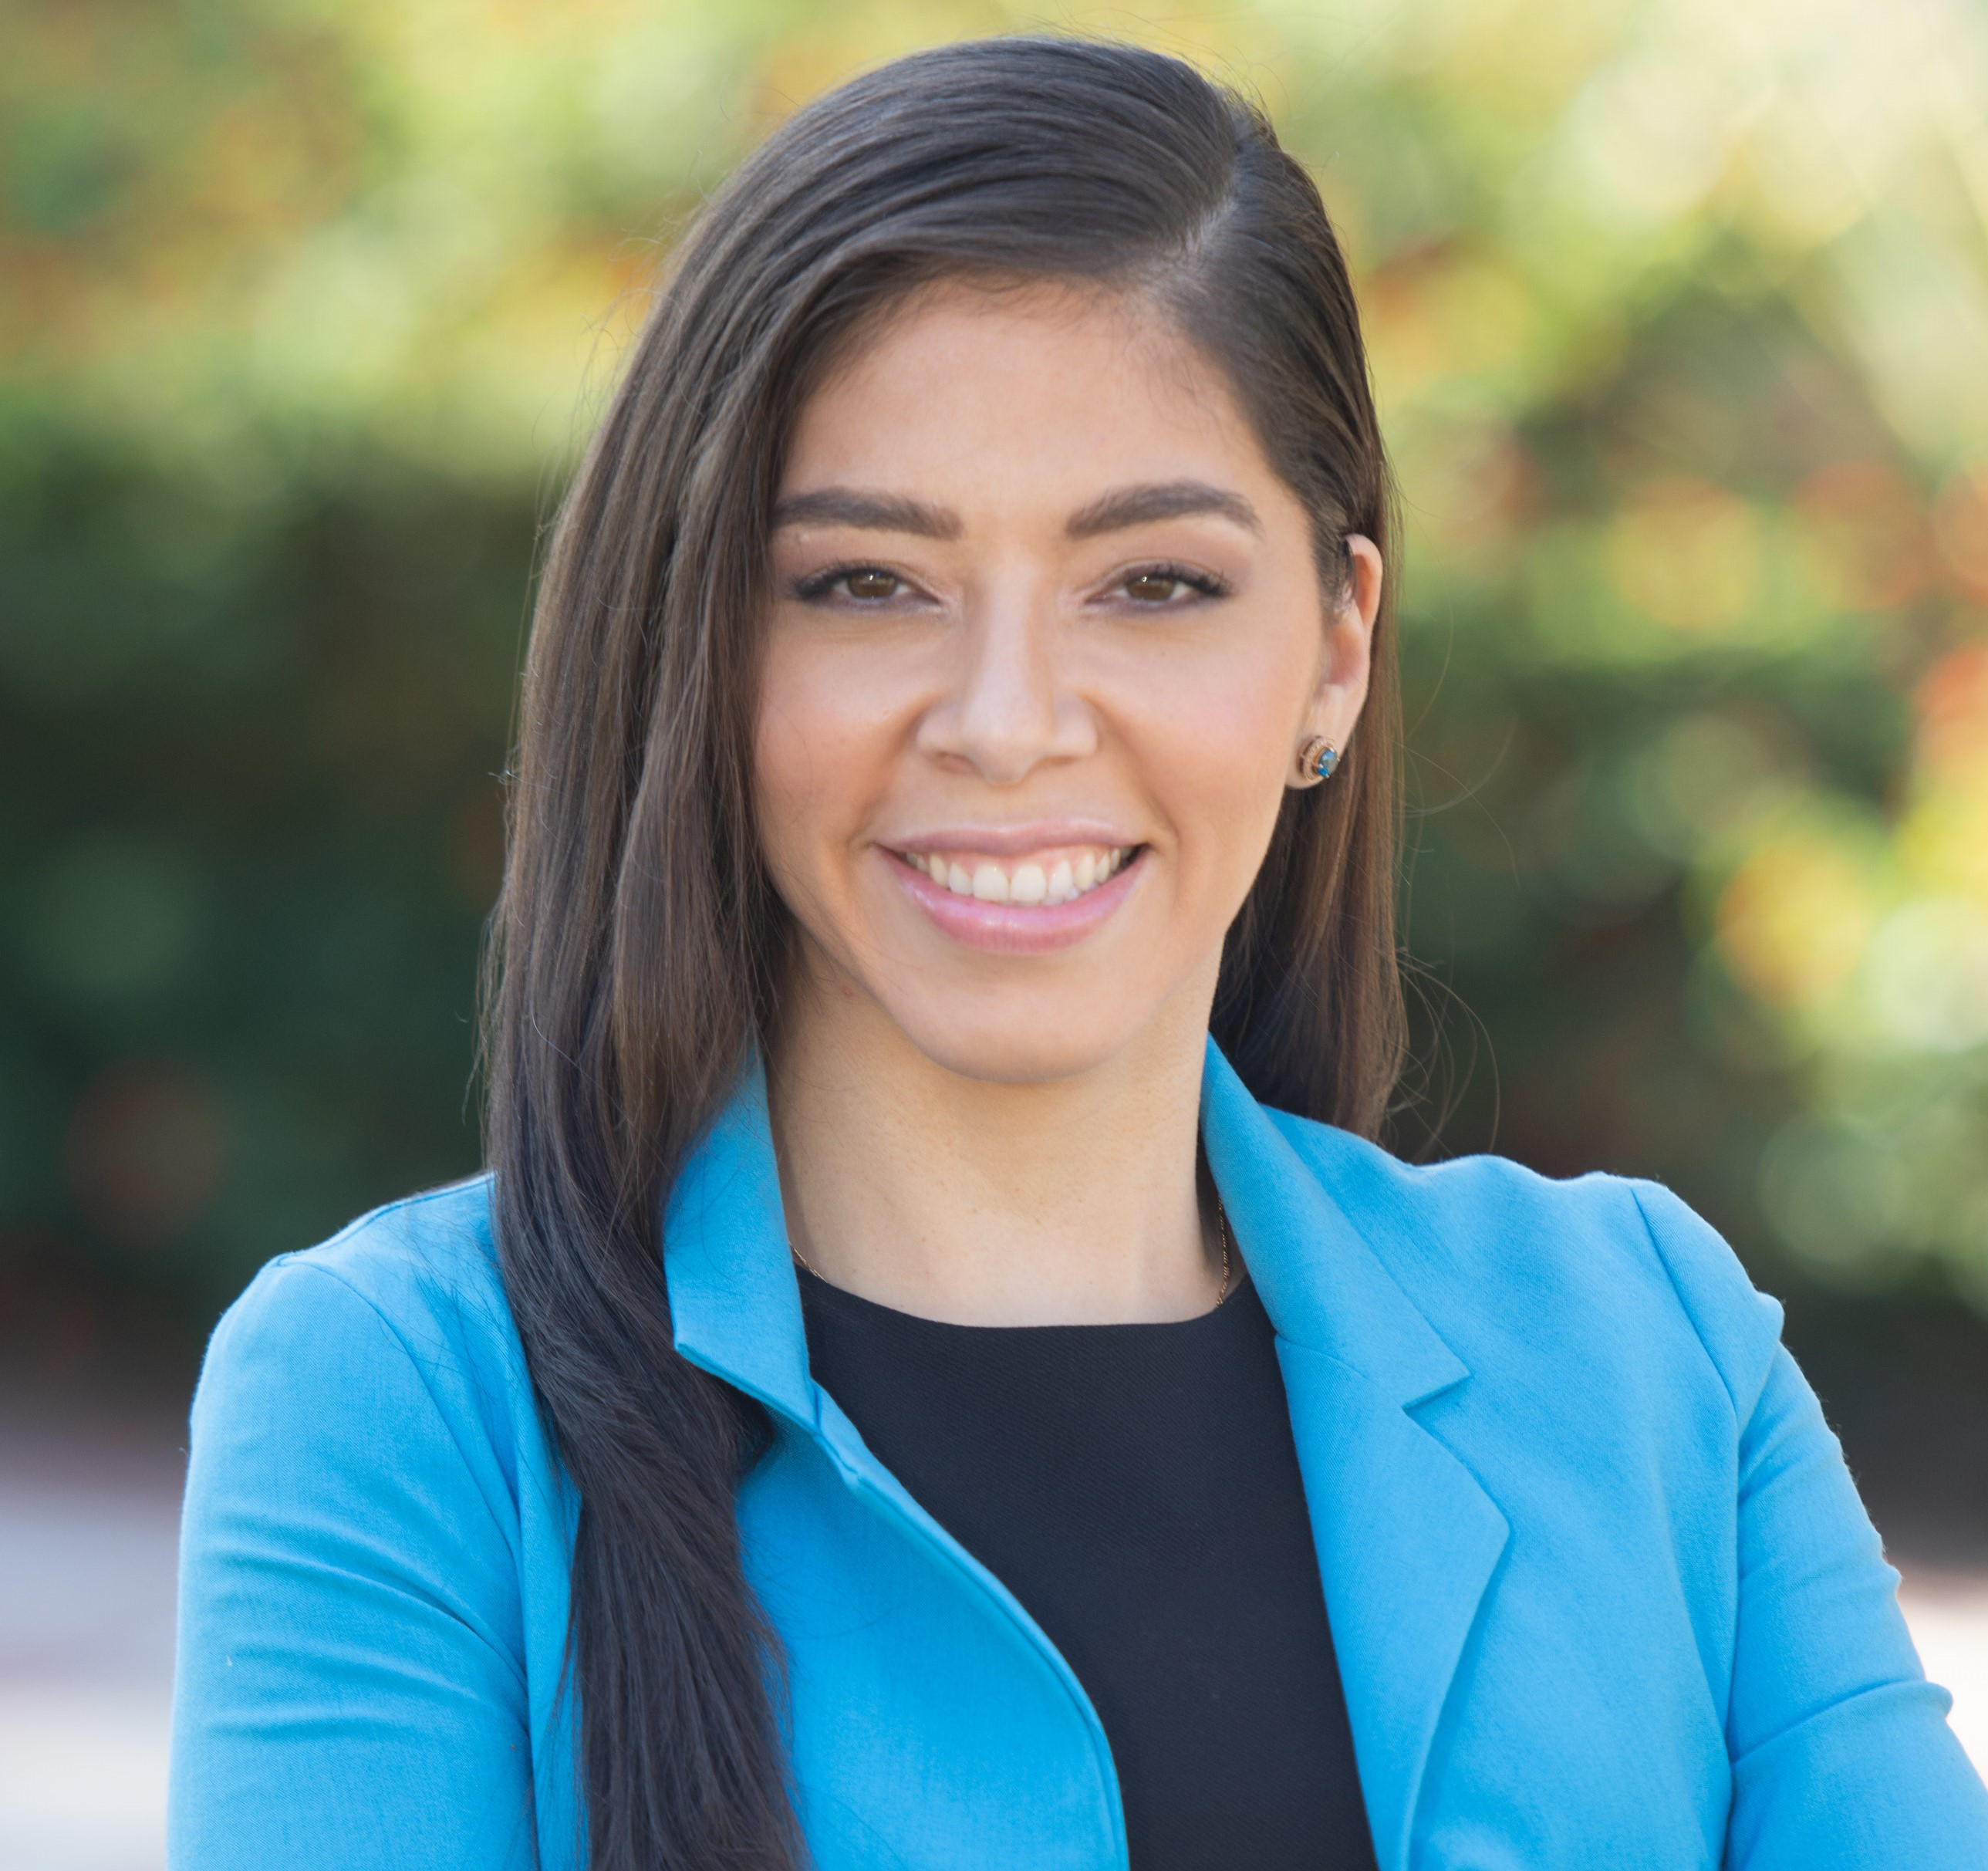 CPLC Action Fund PAC endorses Cinthia Estela for Phoenix City Council